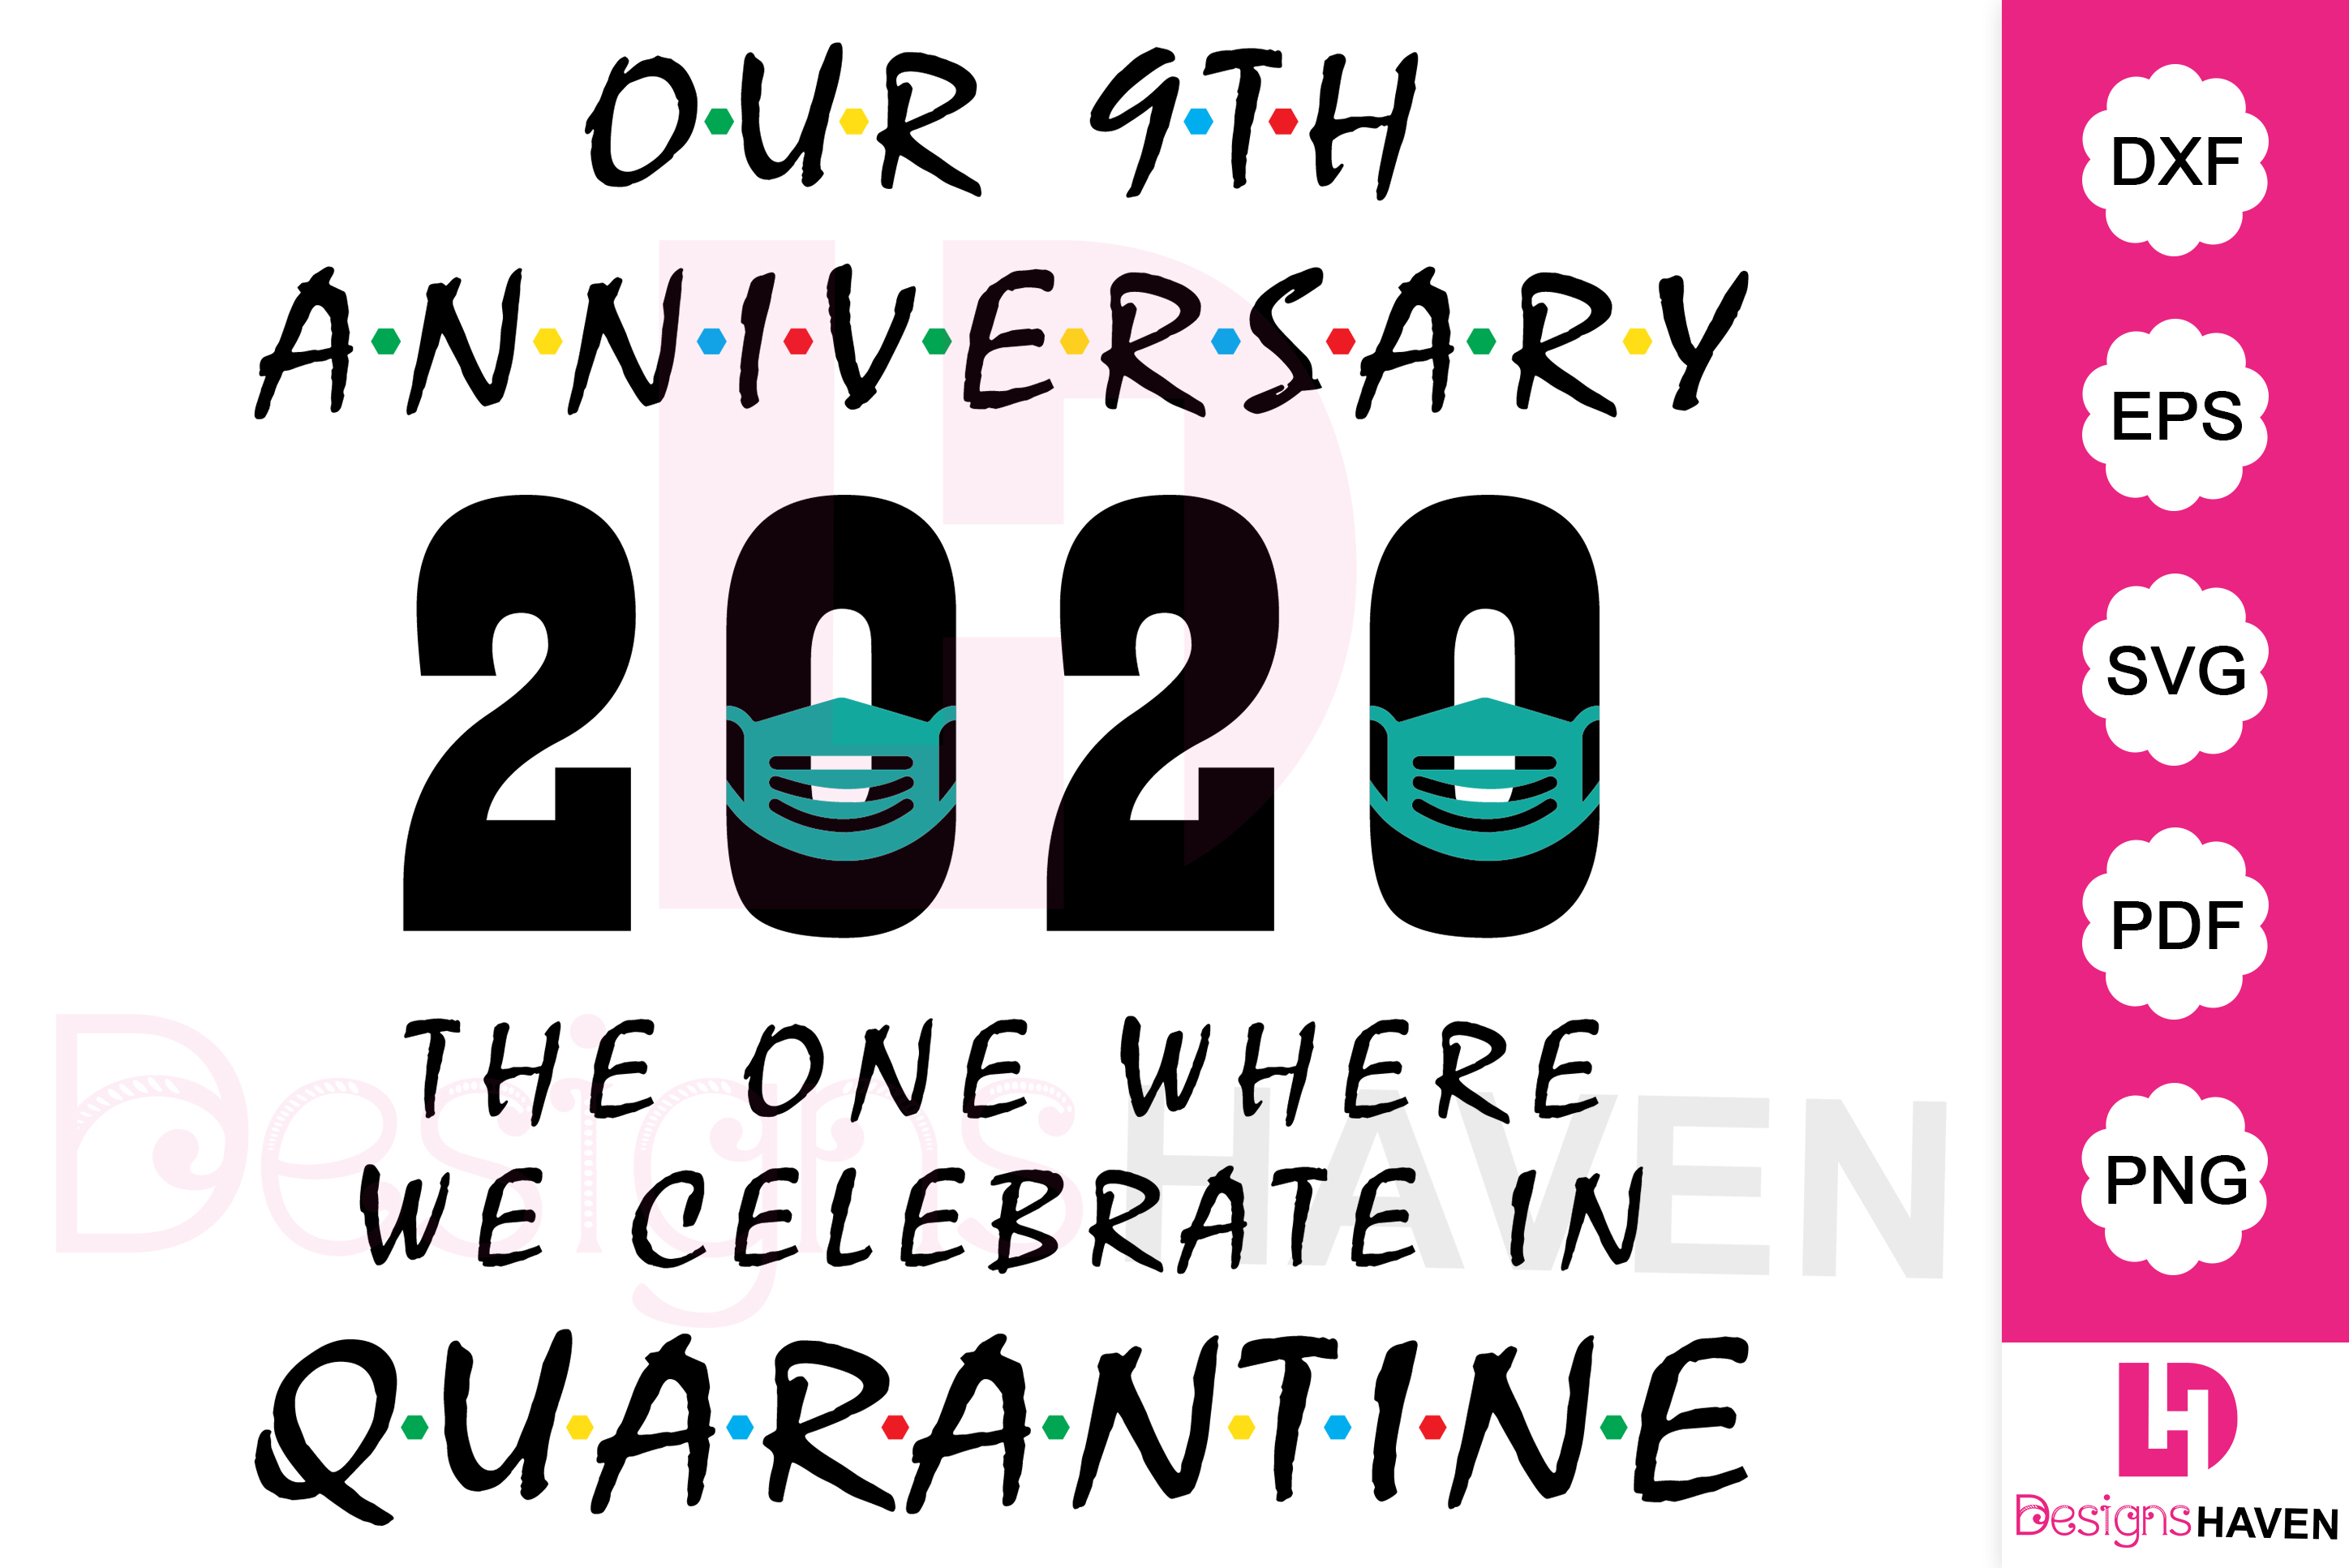 Download Free Our 9th Anniversary 2020 Quarantine Graphic By Designshavenllc for Cricut Explore, Silhouette and other cutting machines.